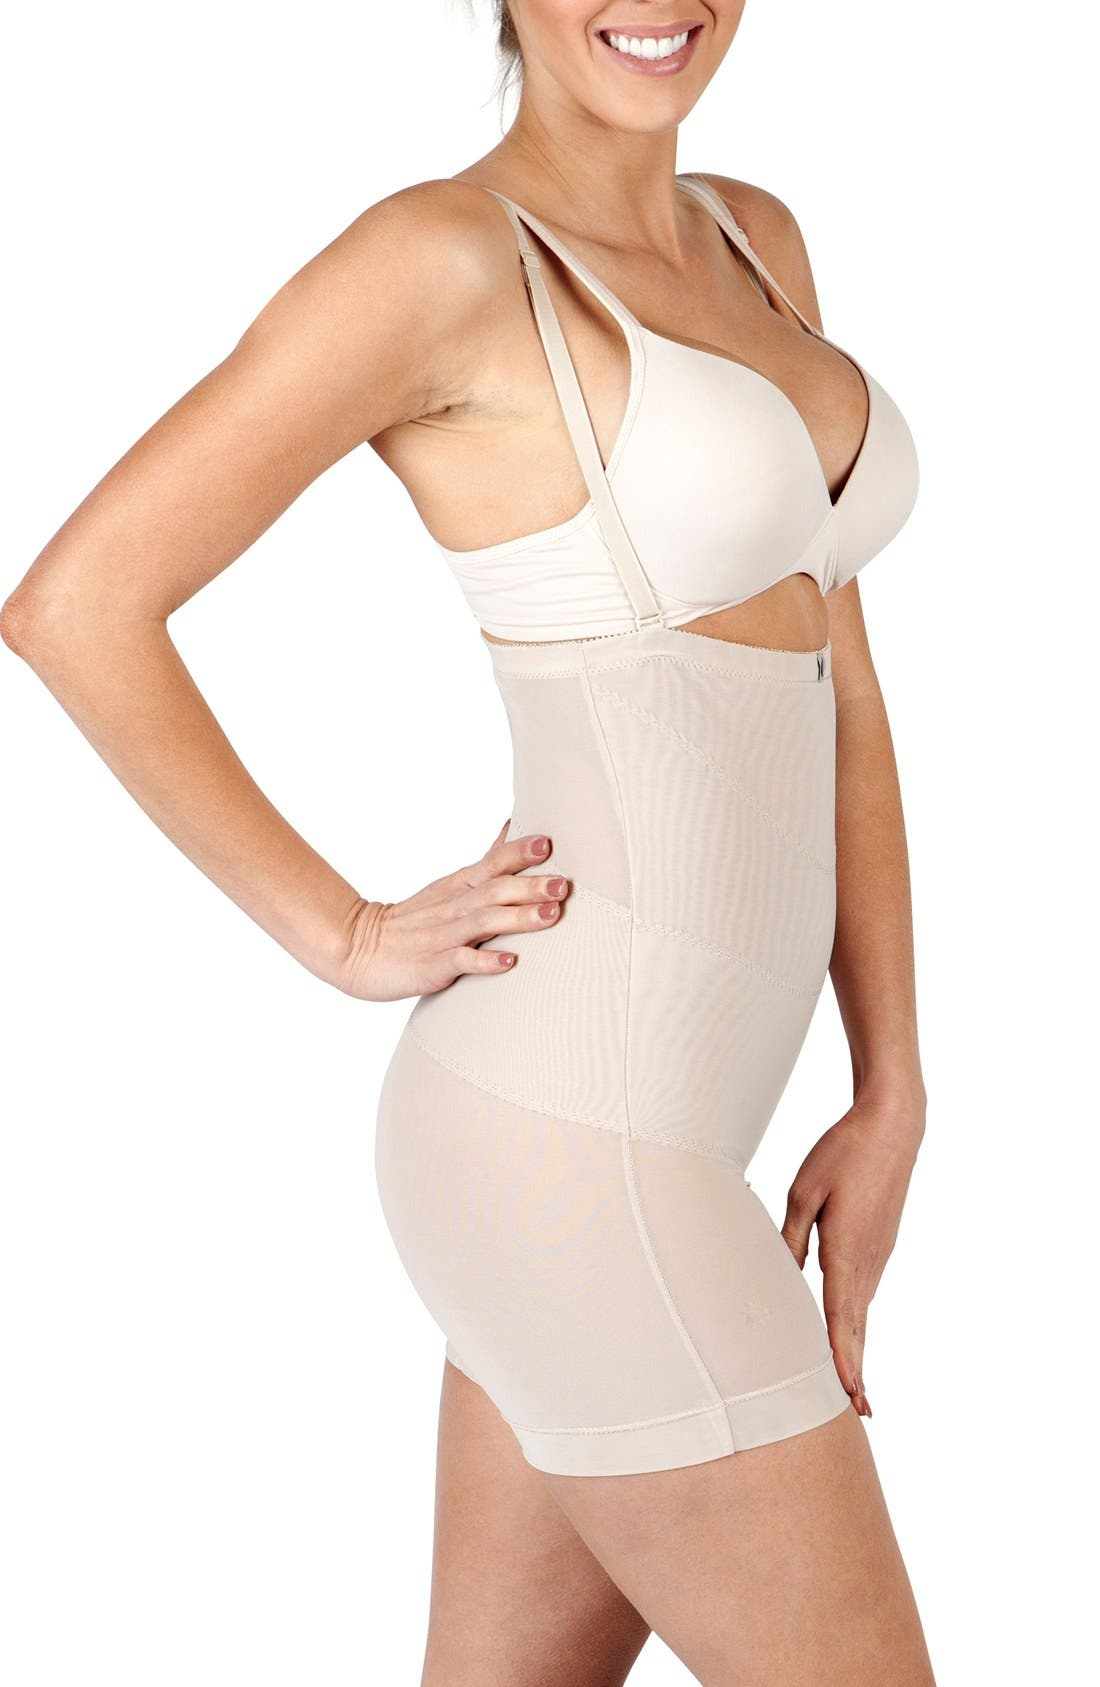 'Sienna' Post C-Section Garment,                             Alternate thumbnail 4, color,                             NUDE